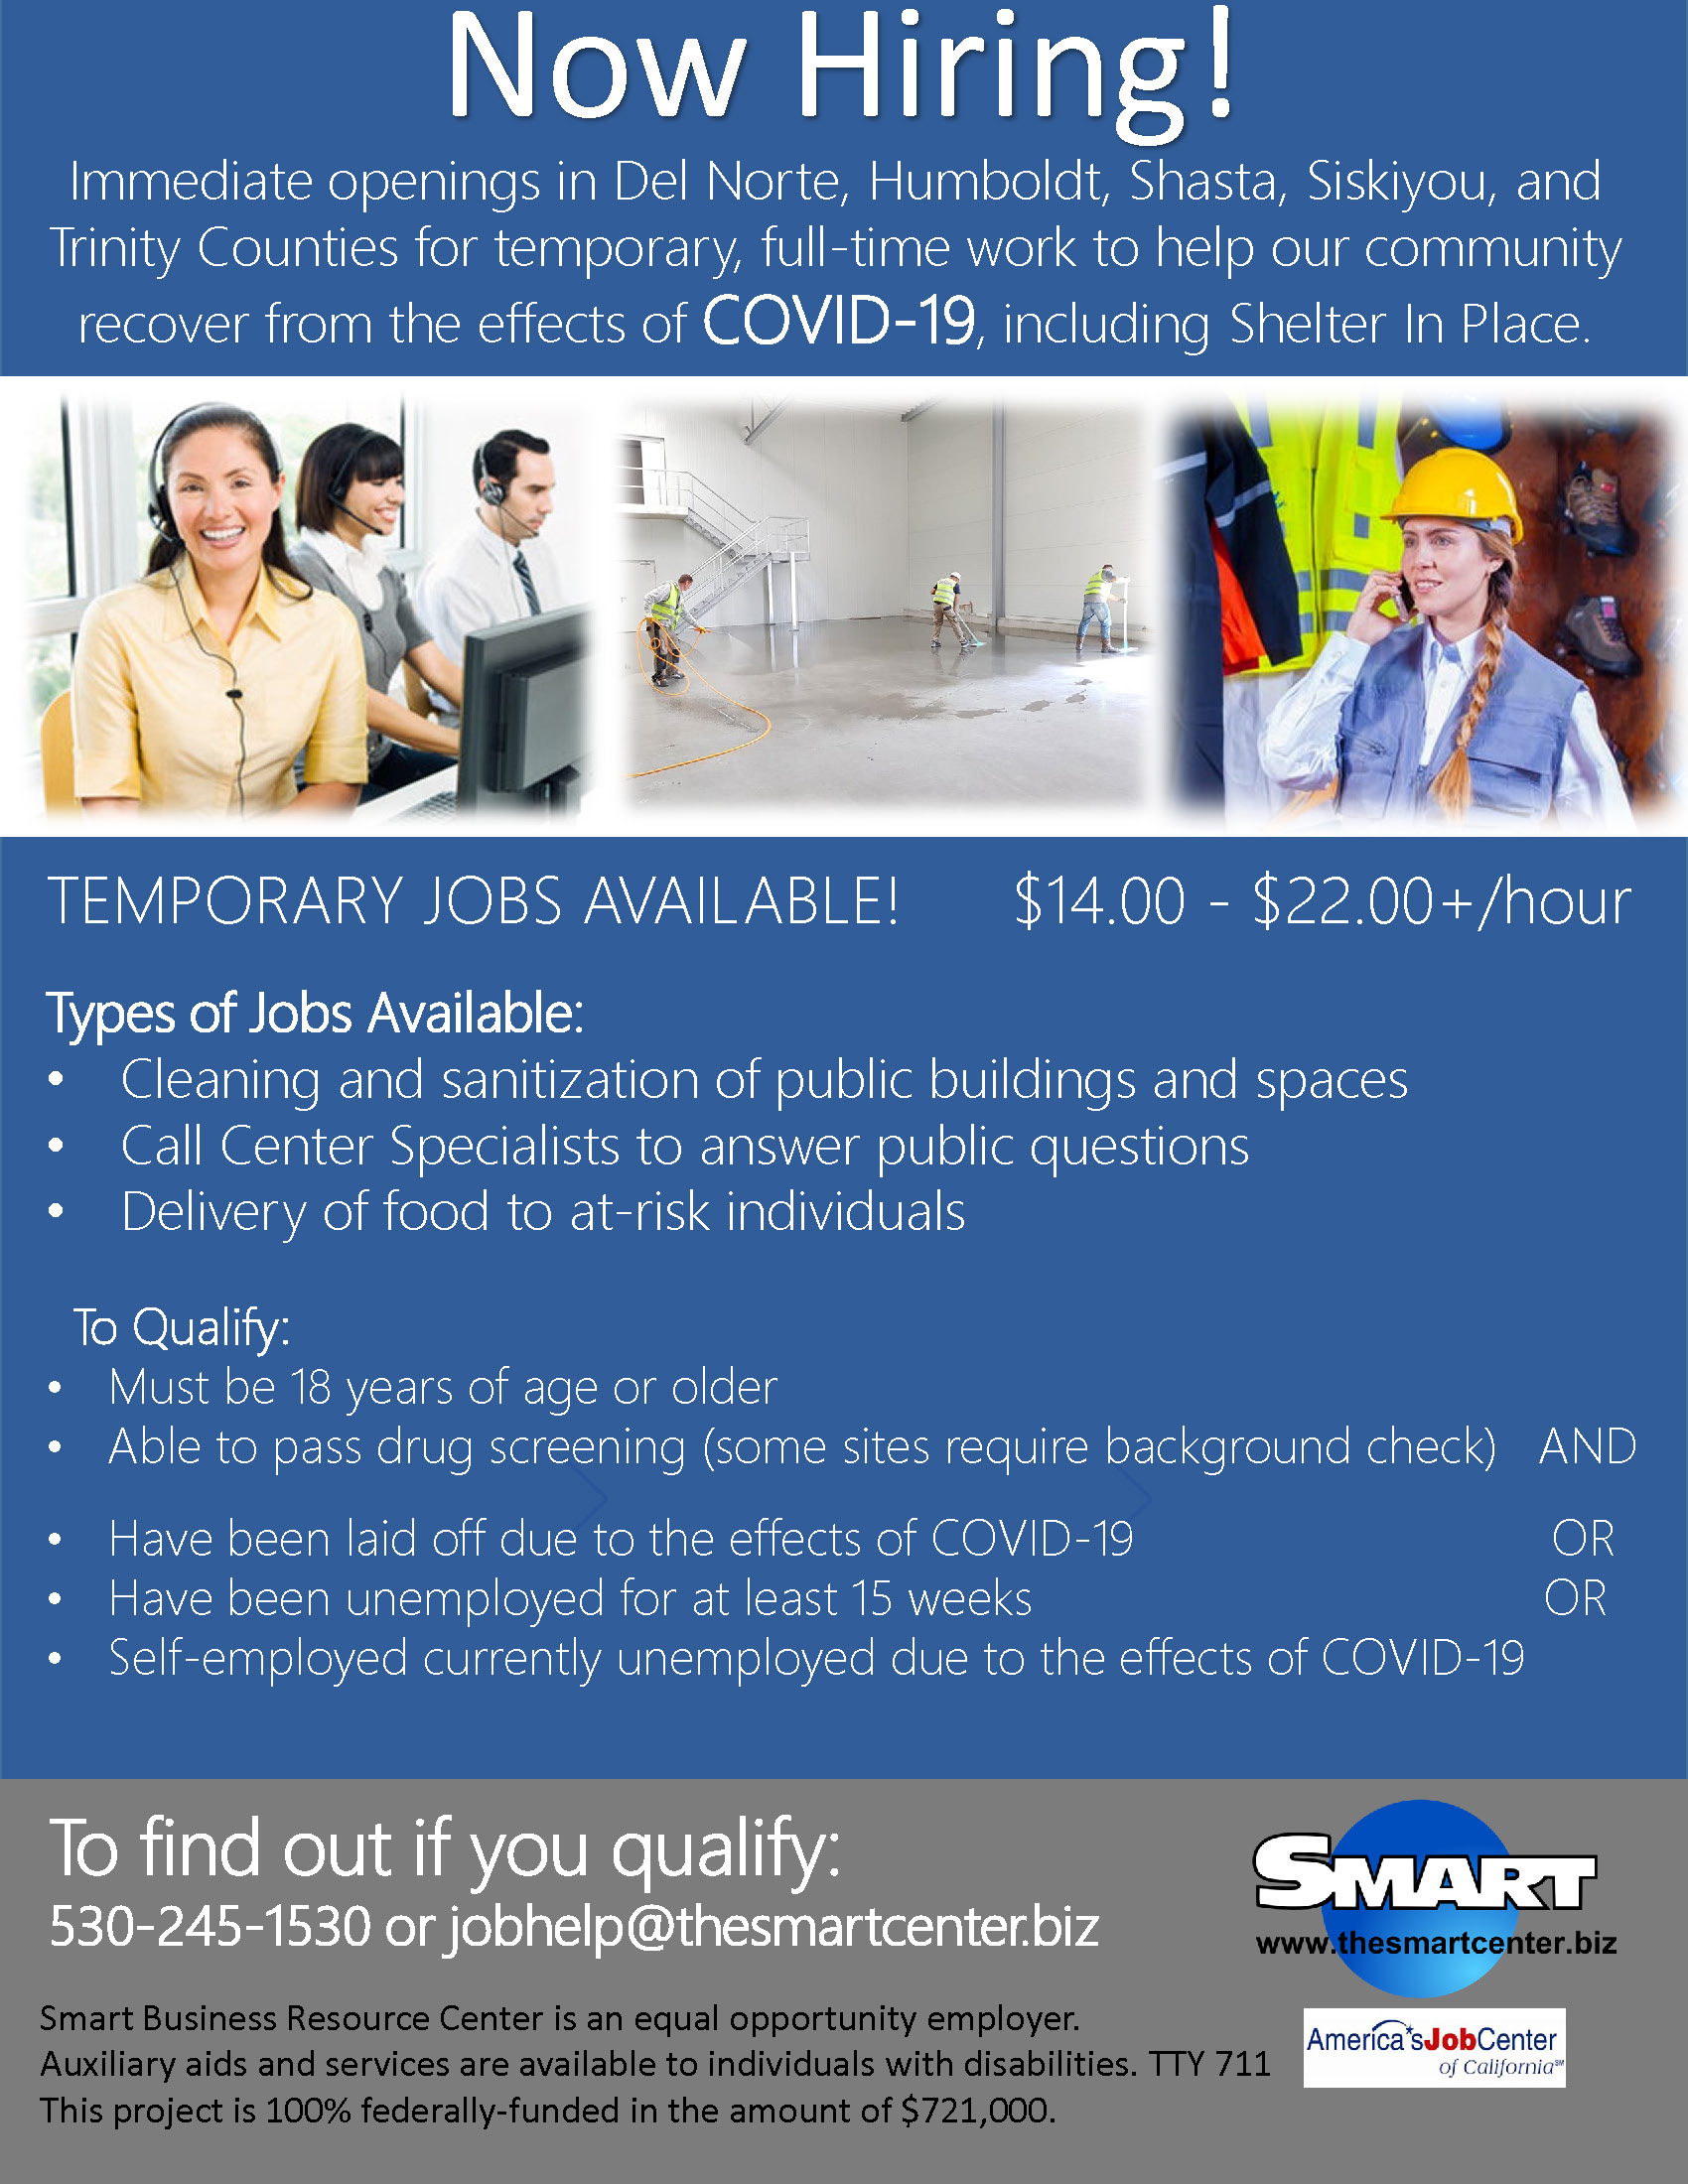 COVID Now Hiring Flyer Image